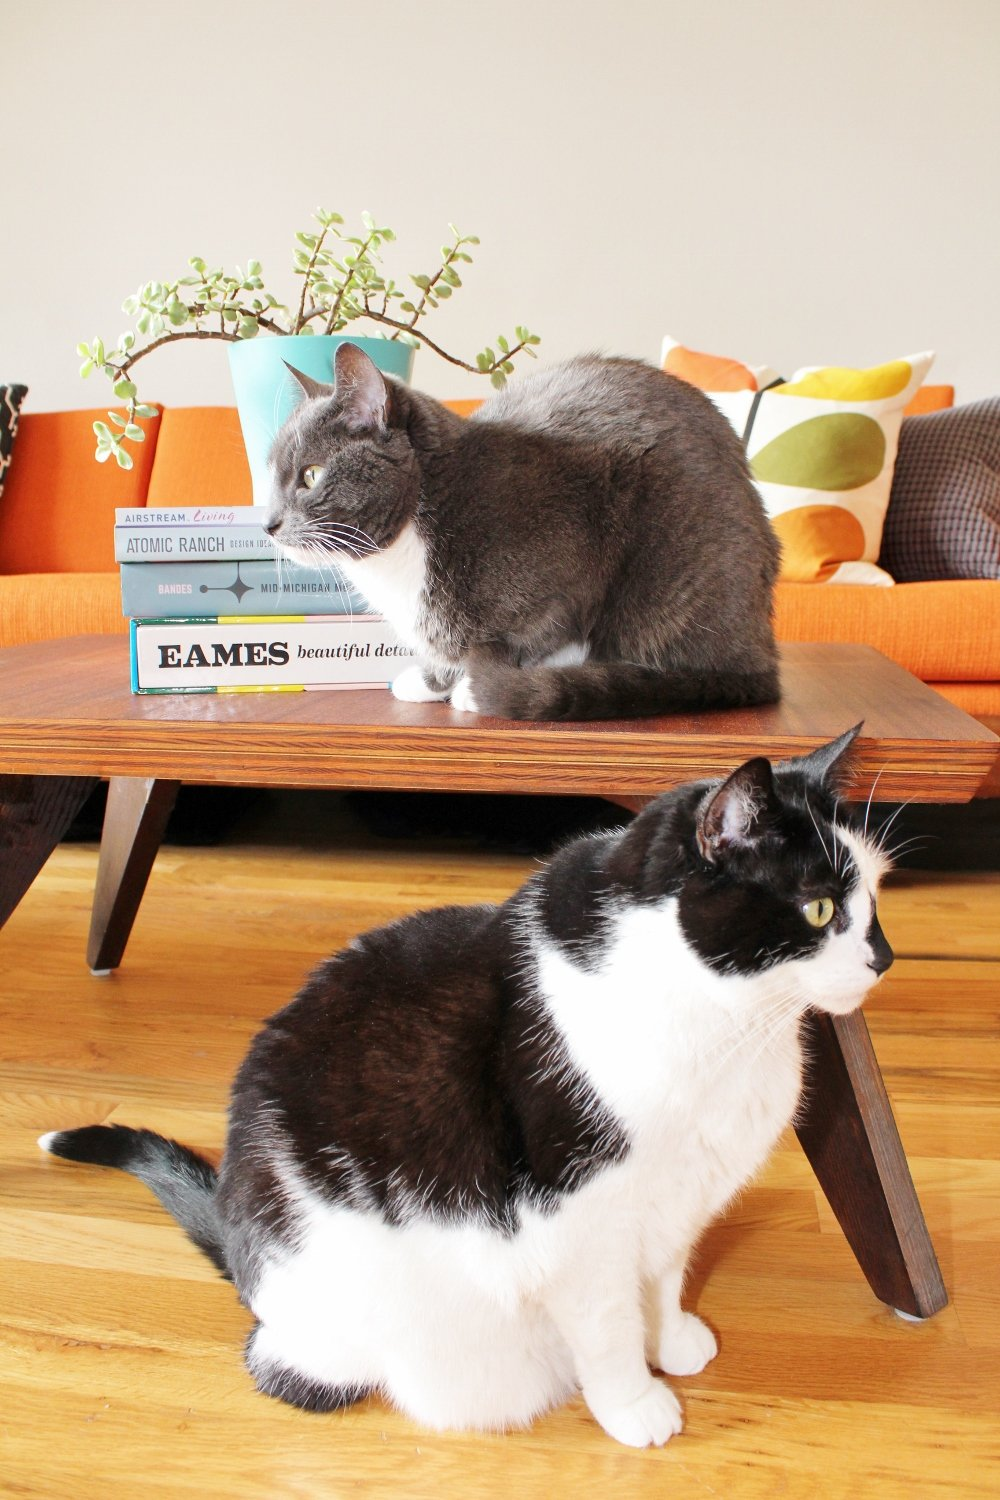 Midcentury modern living room with cats and coffee table books